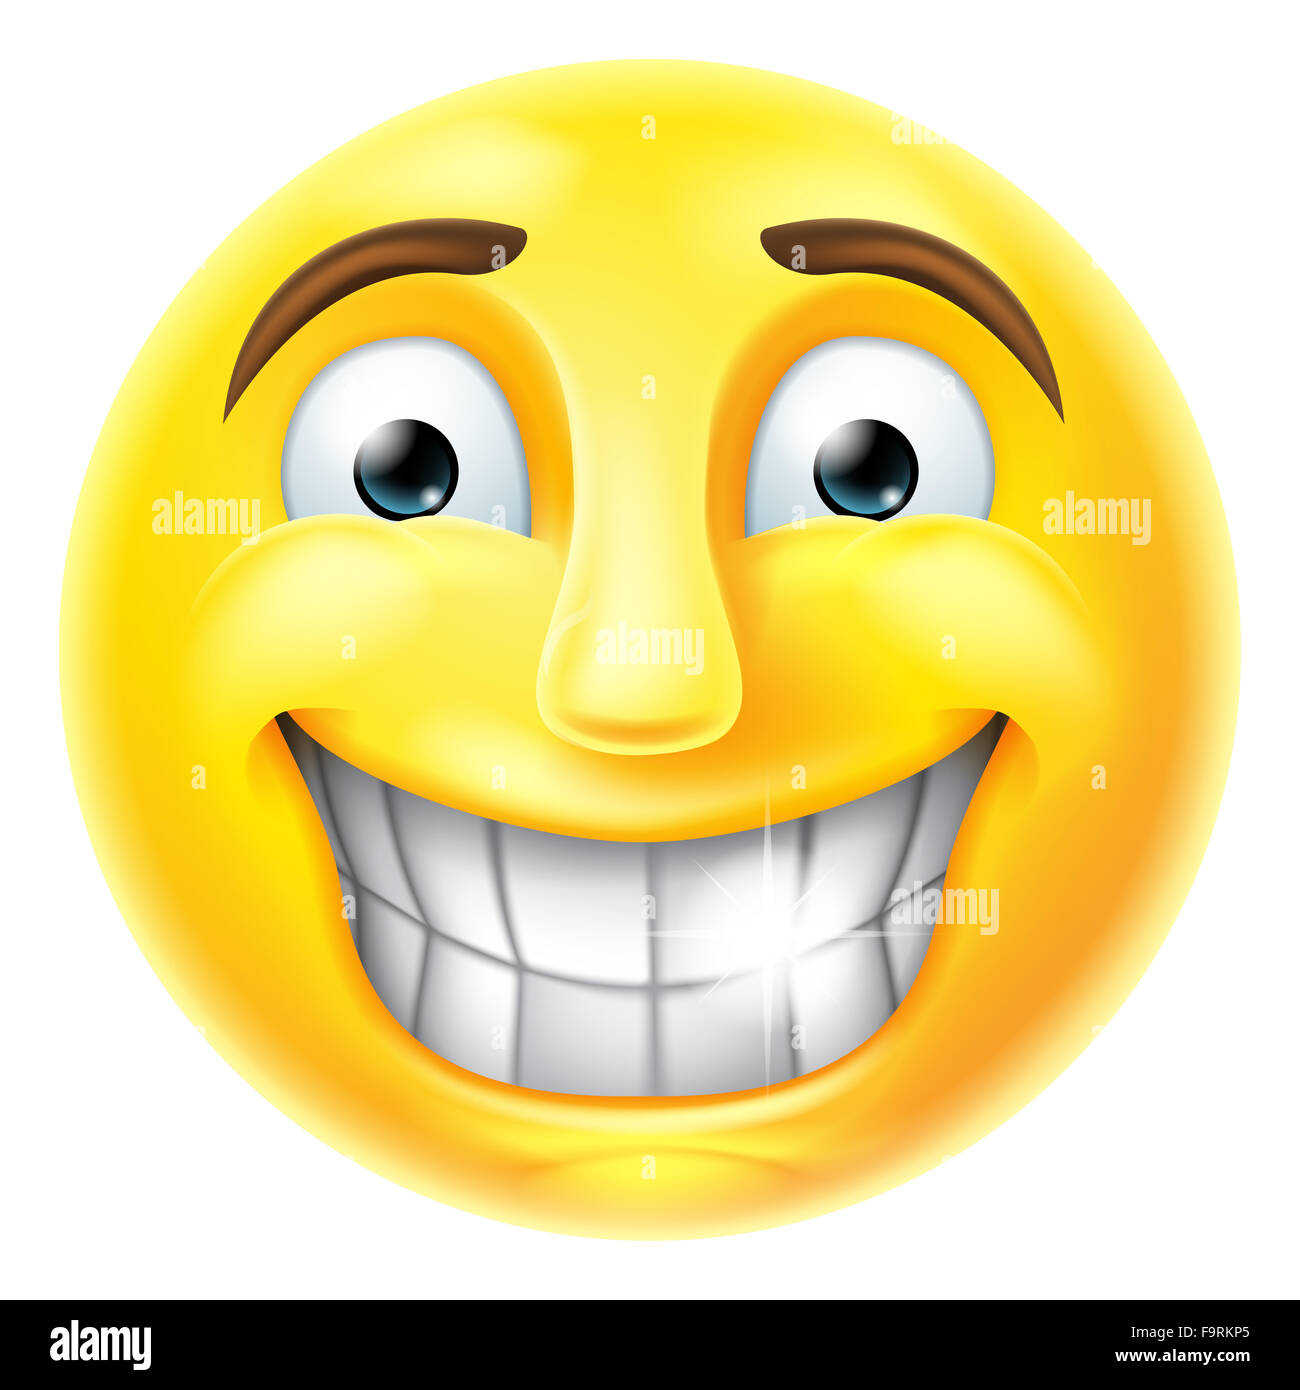 a smiling cartoon emoji emoticon smiley face character stock photo